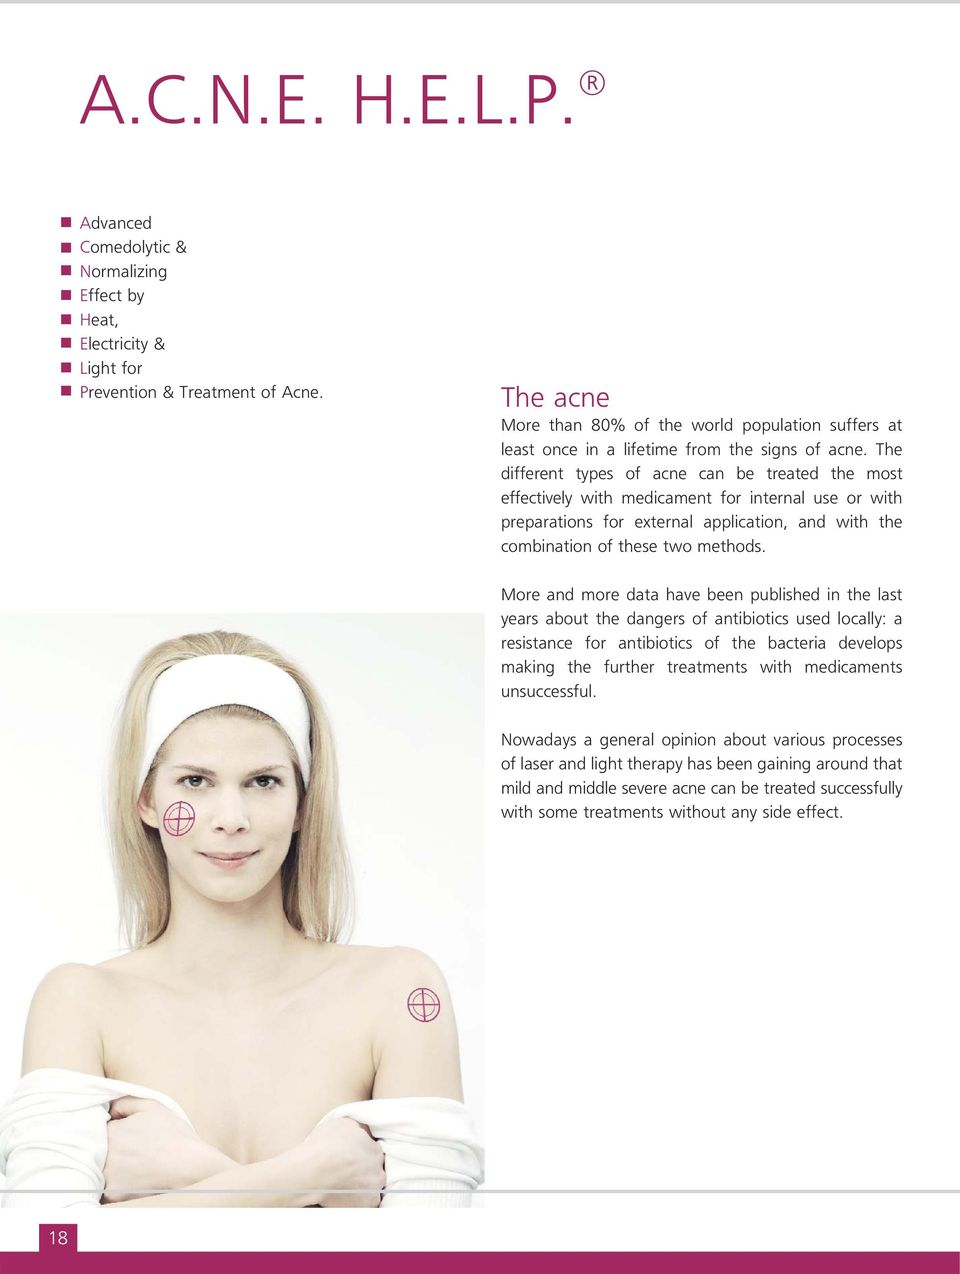 The different types of acne can be treated the most effectively with medicament for internal use or with preparations for external application, and with the combination of these two methods.